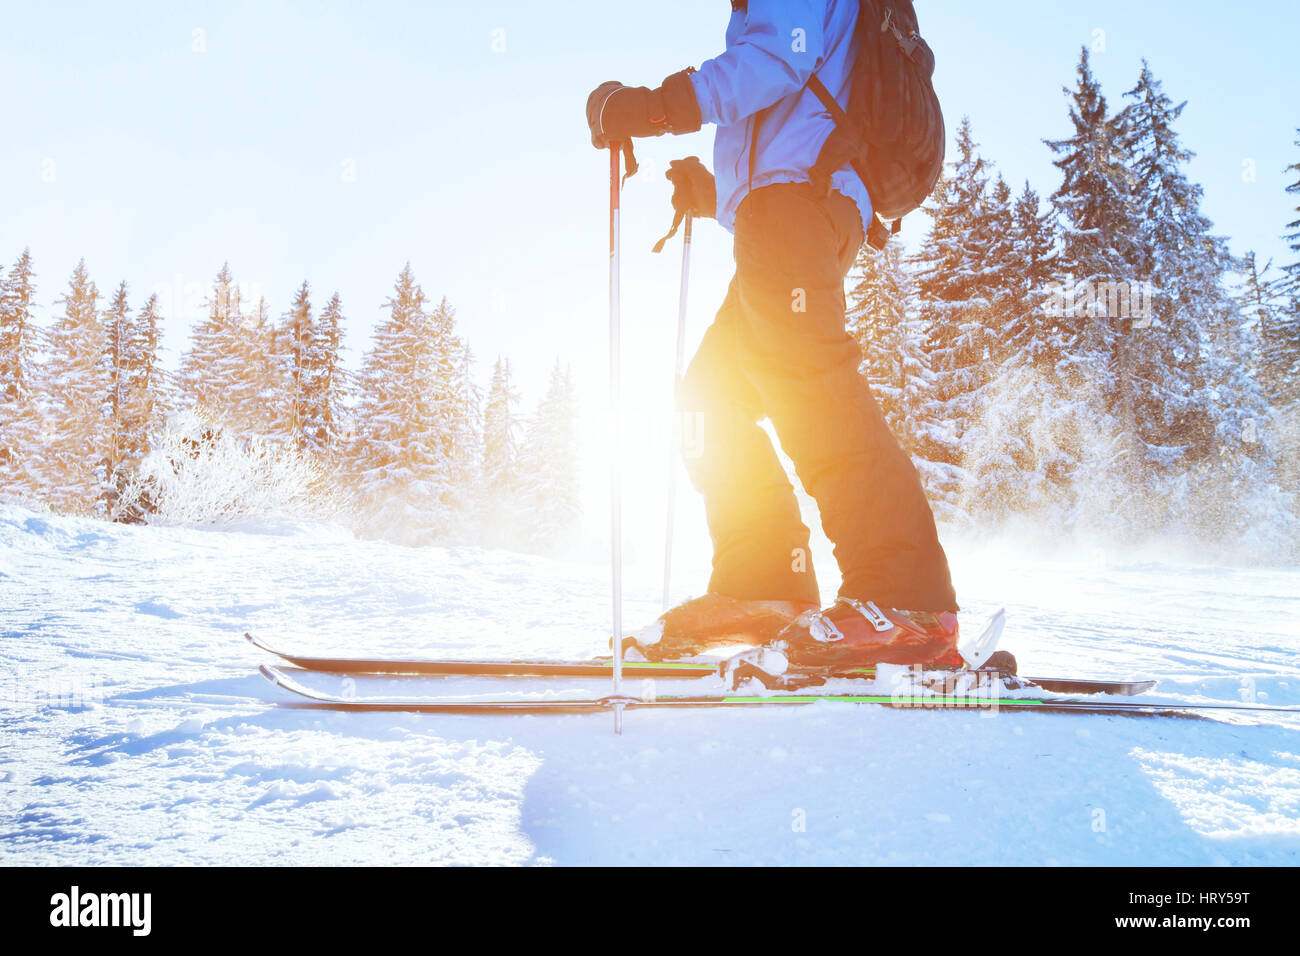 skiing downhill, skier in winter forest mountains, background - Stock Image